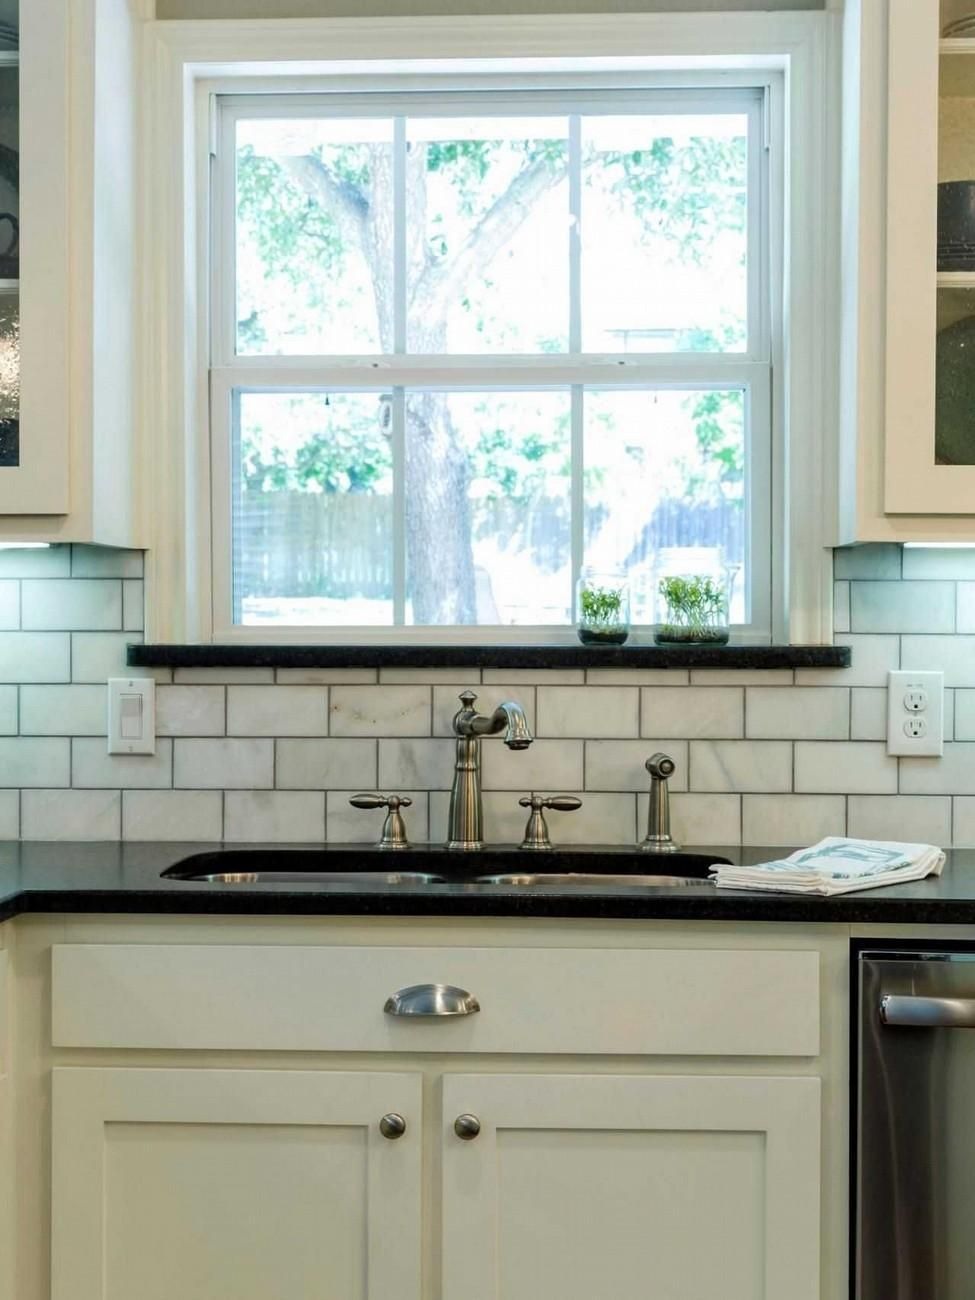 10 mind blowing kitchen windows inspirations you can try kitchen window treatments kitchen on kitchen interior with window id=84167